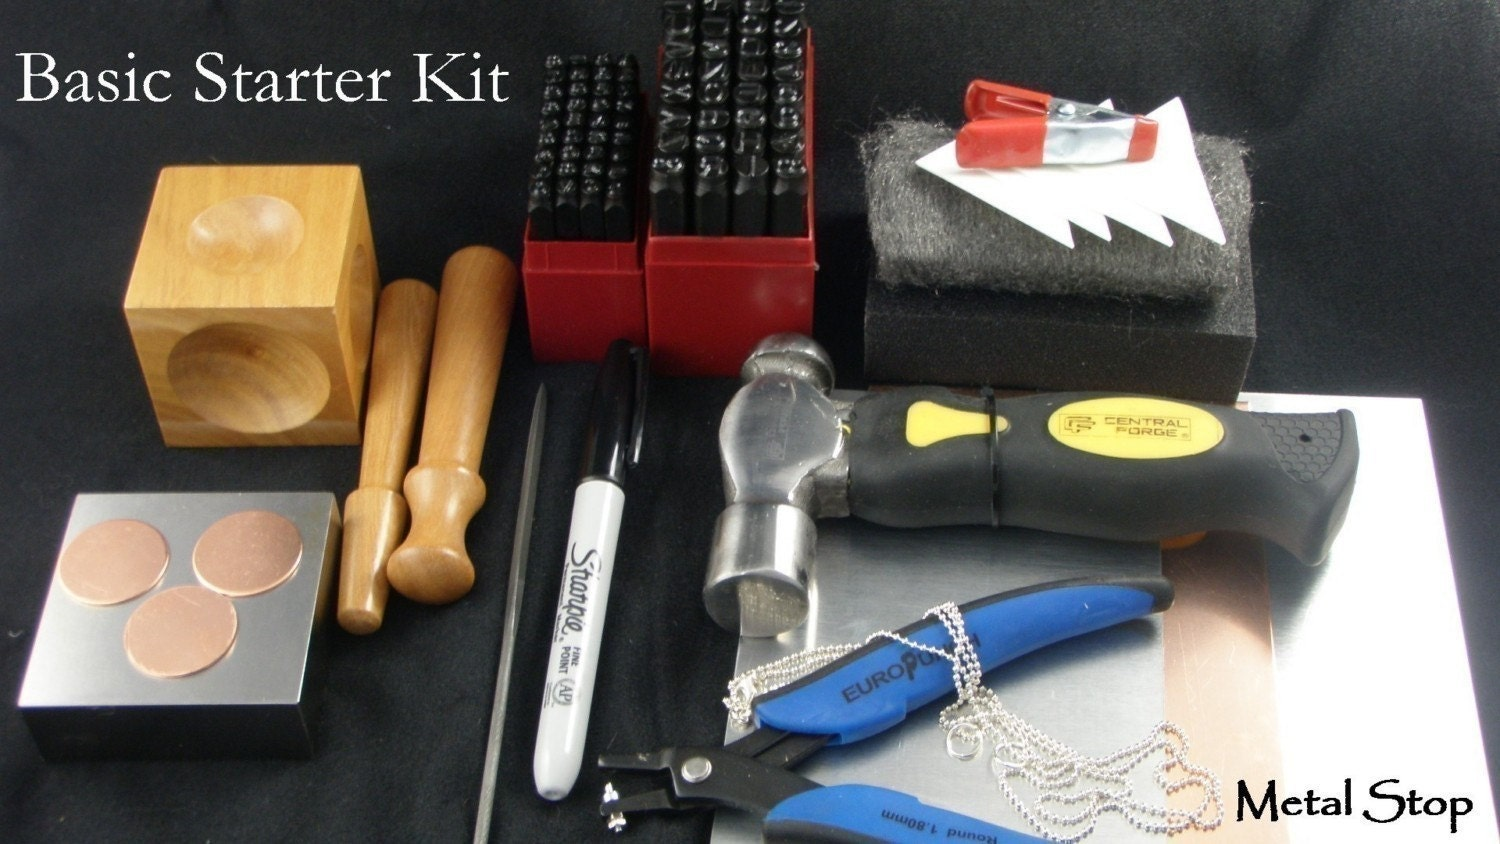 etsy metal jewelry stamping kit terrific starter kit two